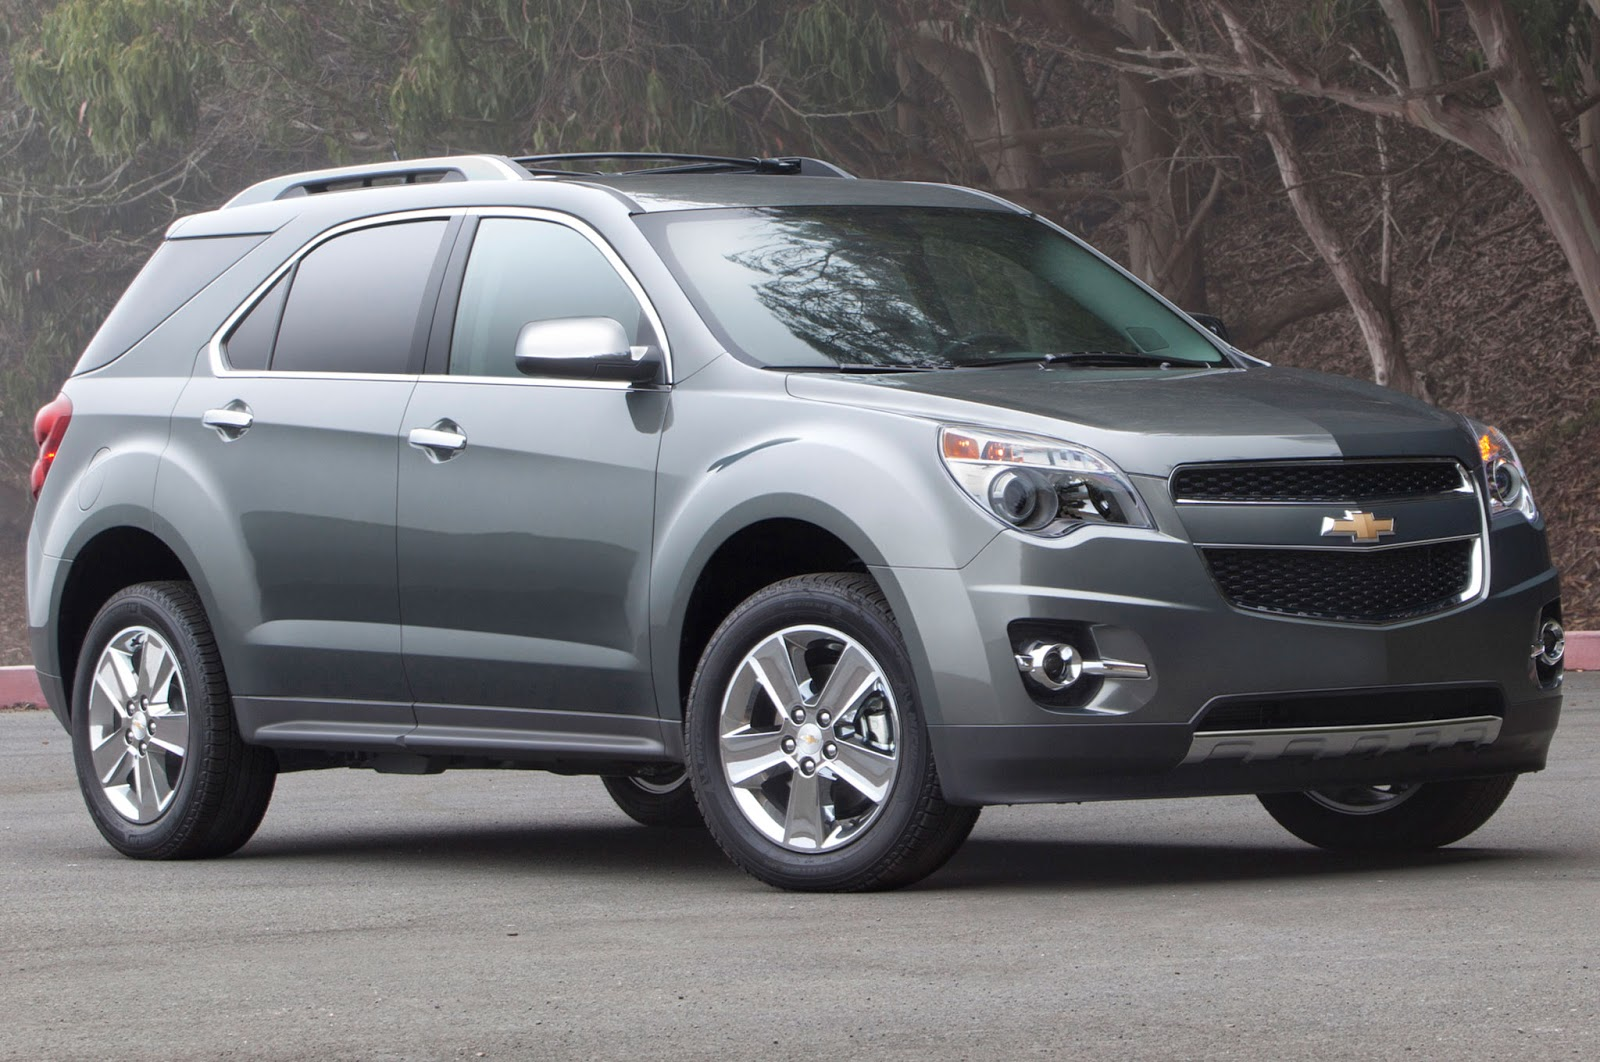 2015_Chevy_Equinox.jpg